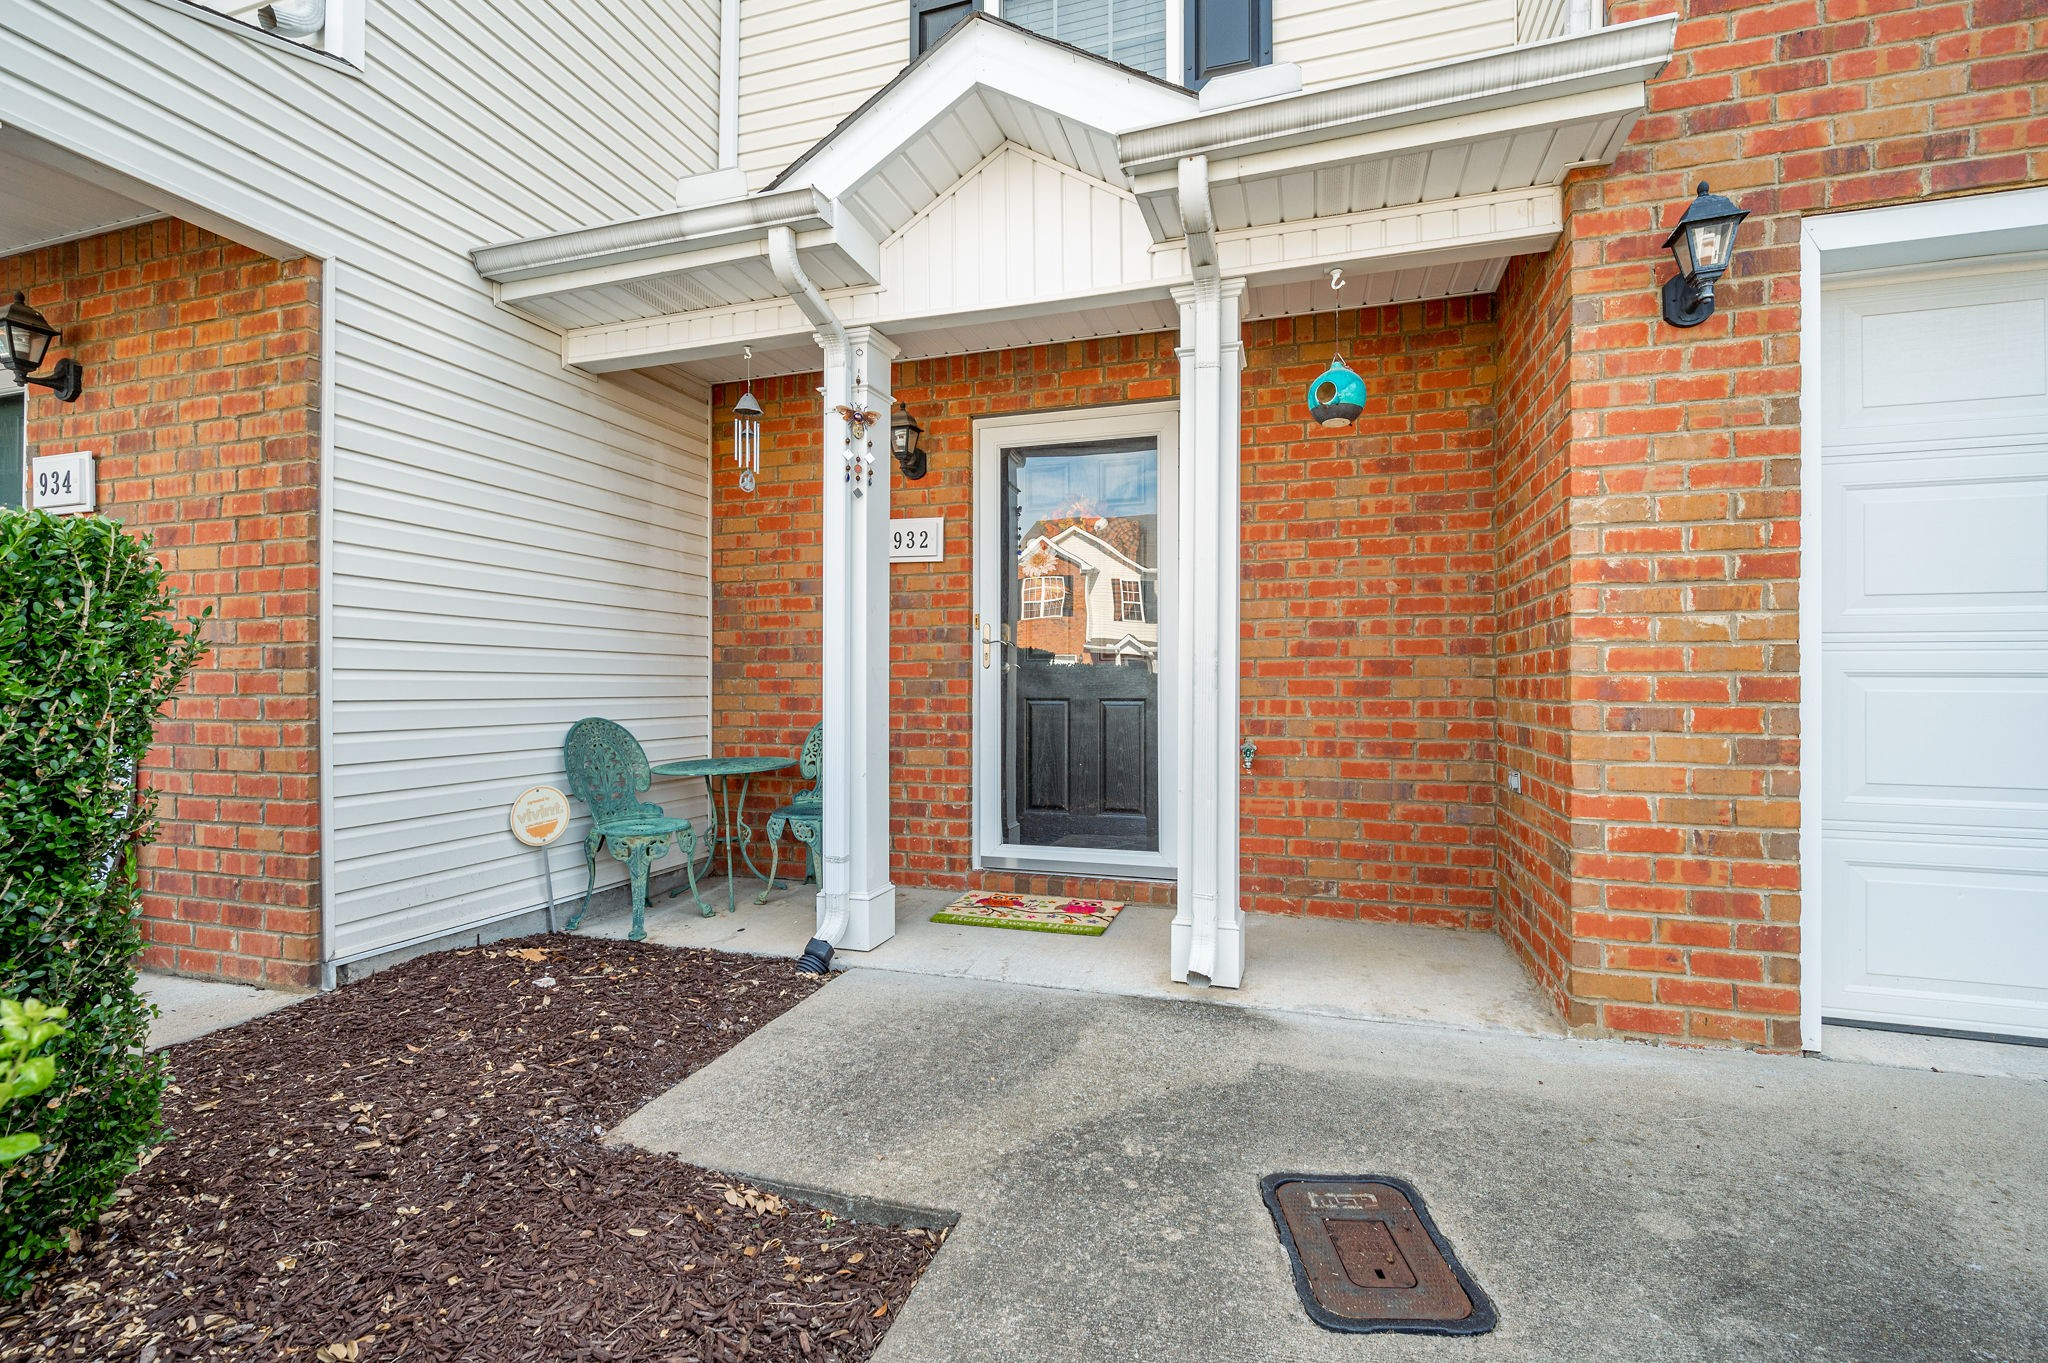 Location! Location! Location!  Move in Ready! No need to worry with yard maintenance-HOA maintains exterior, landscaping and roof.  Washer and Dryer remain.